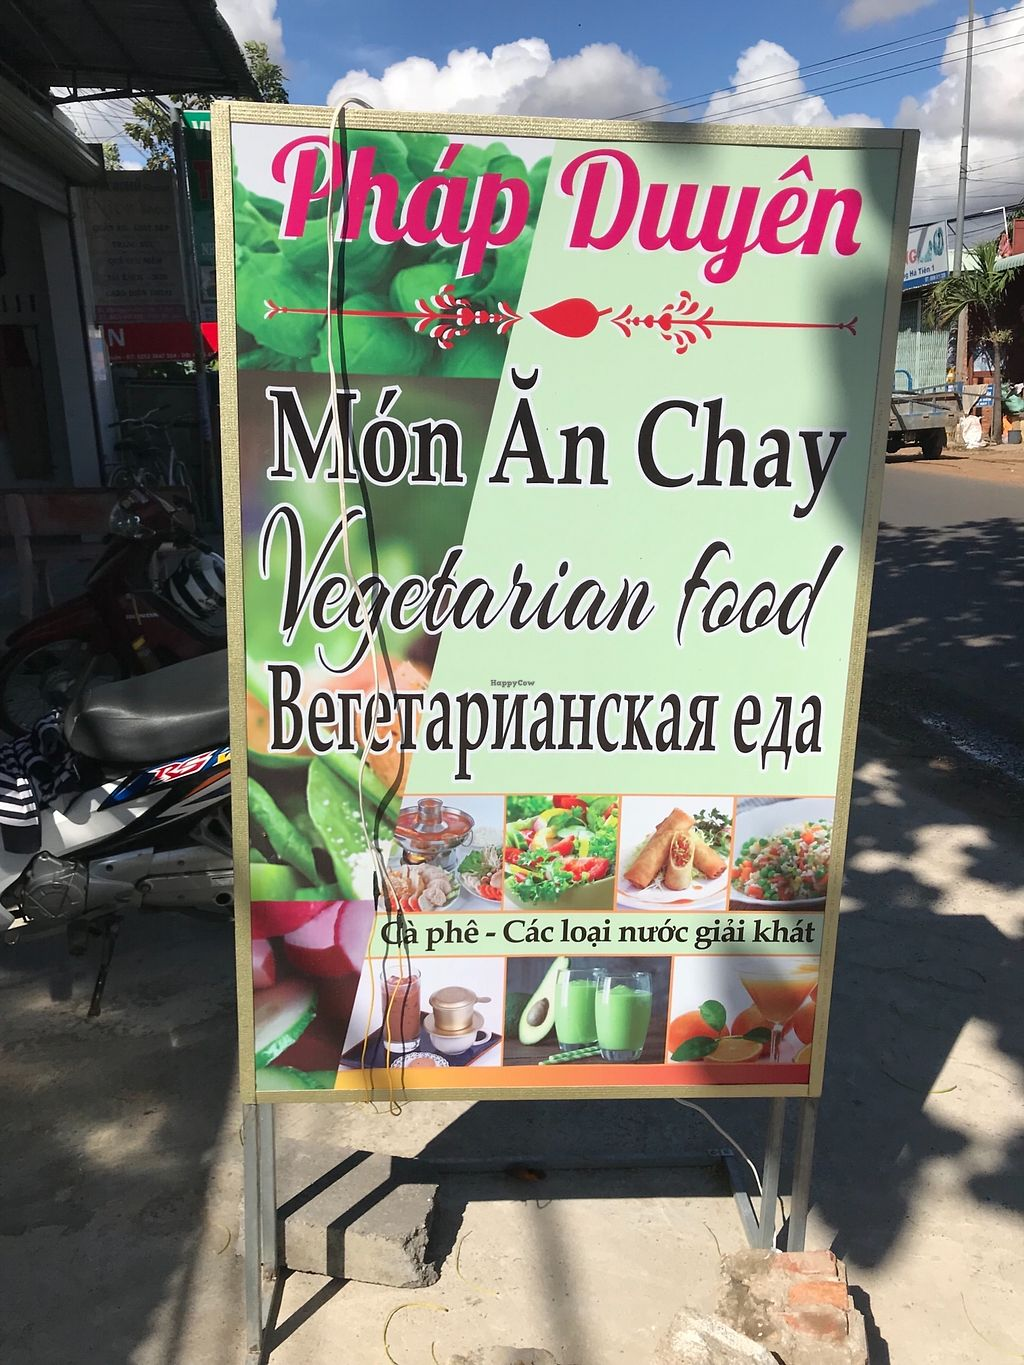 """Photo of Phap Duyen Mon An Chay  by <a href=""""/members/profile/kezia"""">kezia</a> <br/>Sign to look ? our for along the road side.  <br/> January 7, 2018  - <a href='/contact/abuse/image/108756/343920'>Report</a>"""